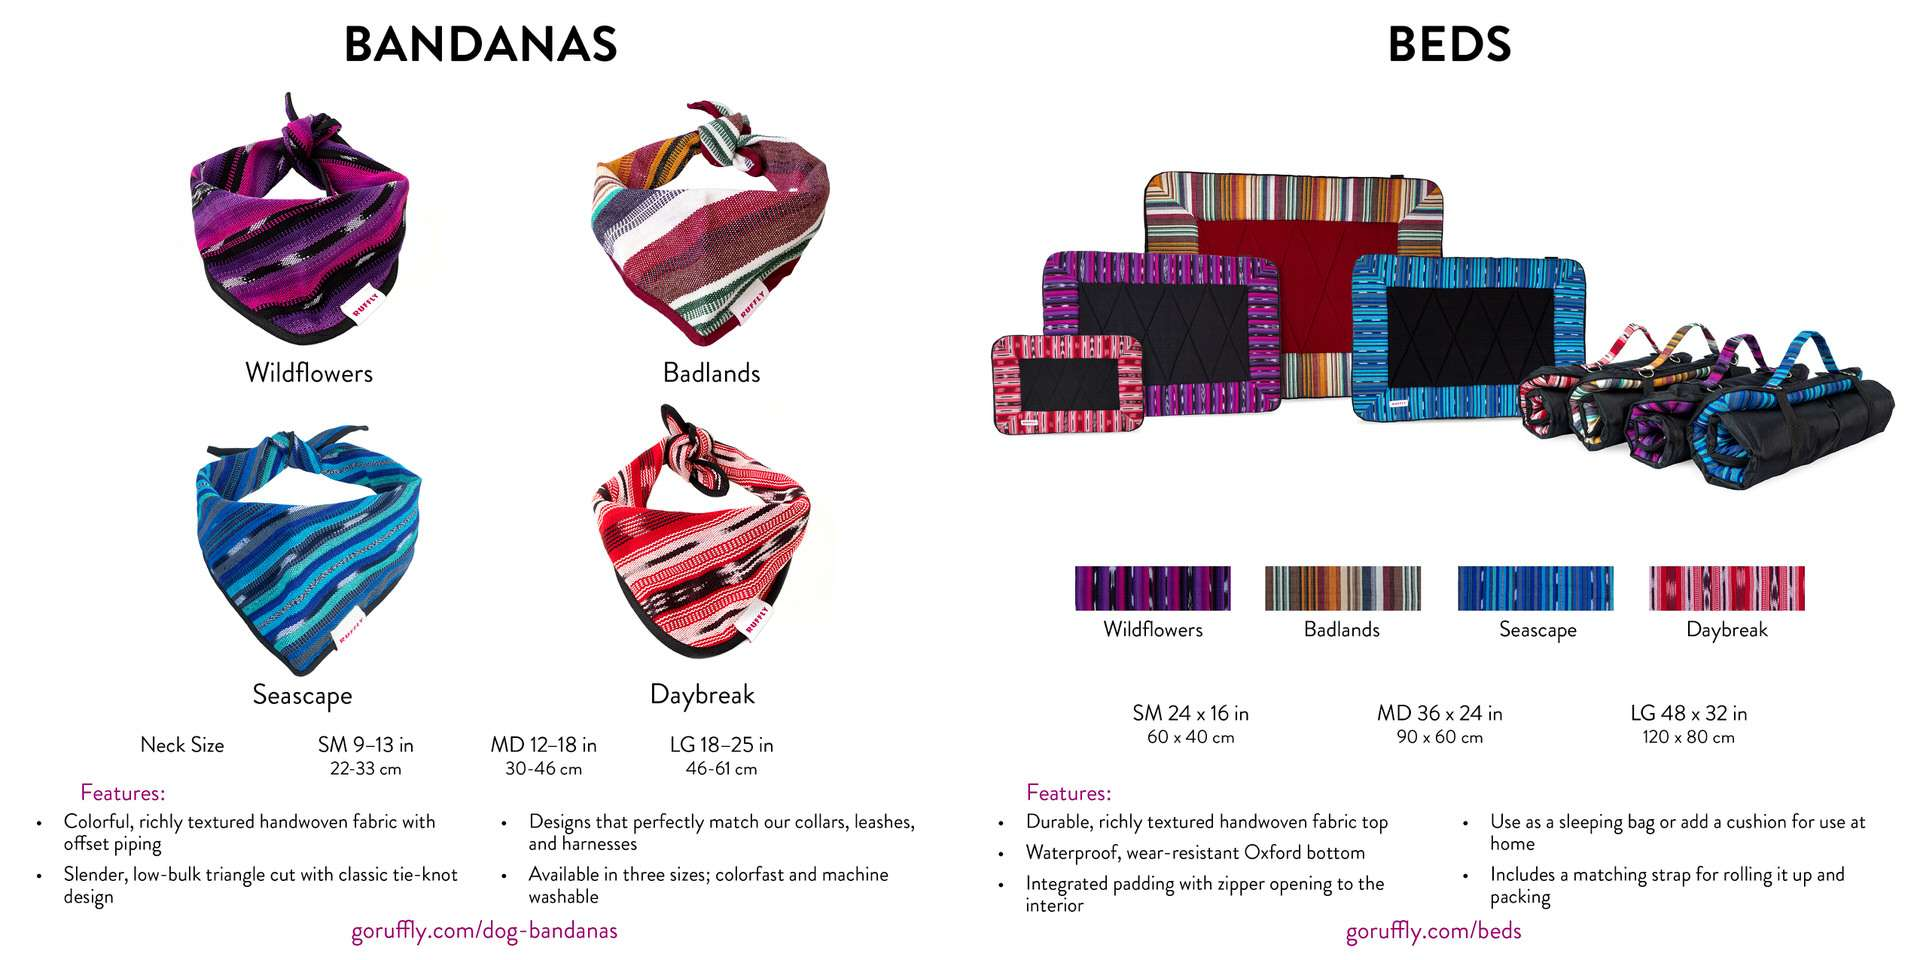 Pages 12 and 13 of RUFFLY's lookbook catalogue of dog gear feature bandanas and travel